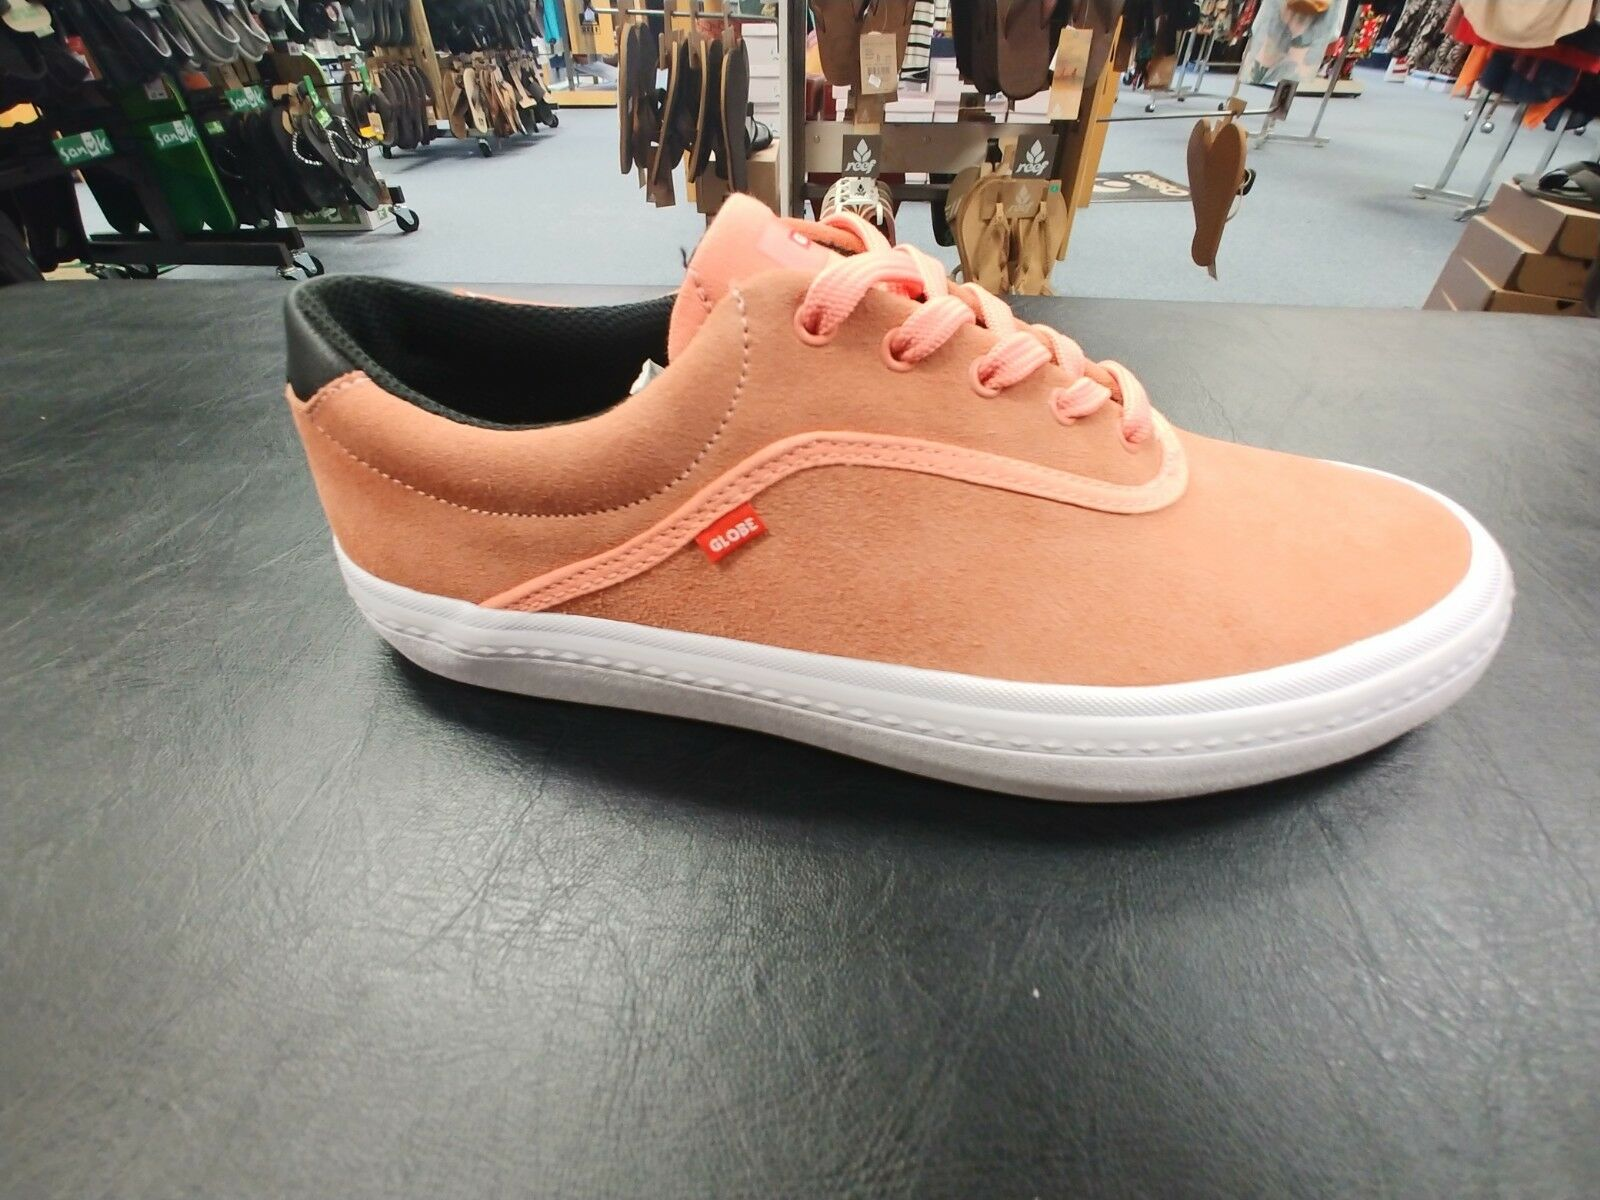 Men's Globe Sprout 10.5 Skateboard Shoe Guava size 10.5 Sprout 2419ef